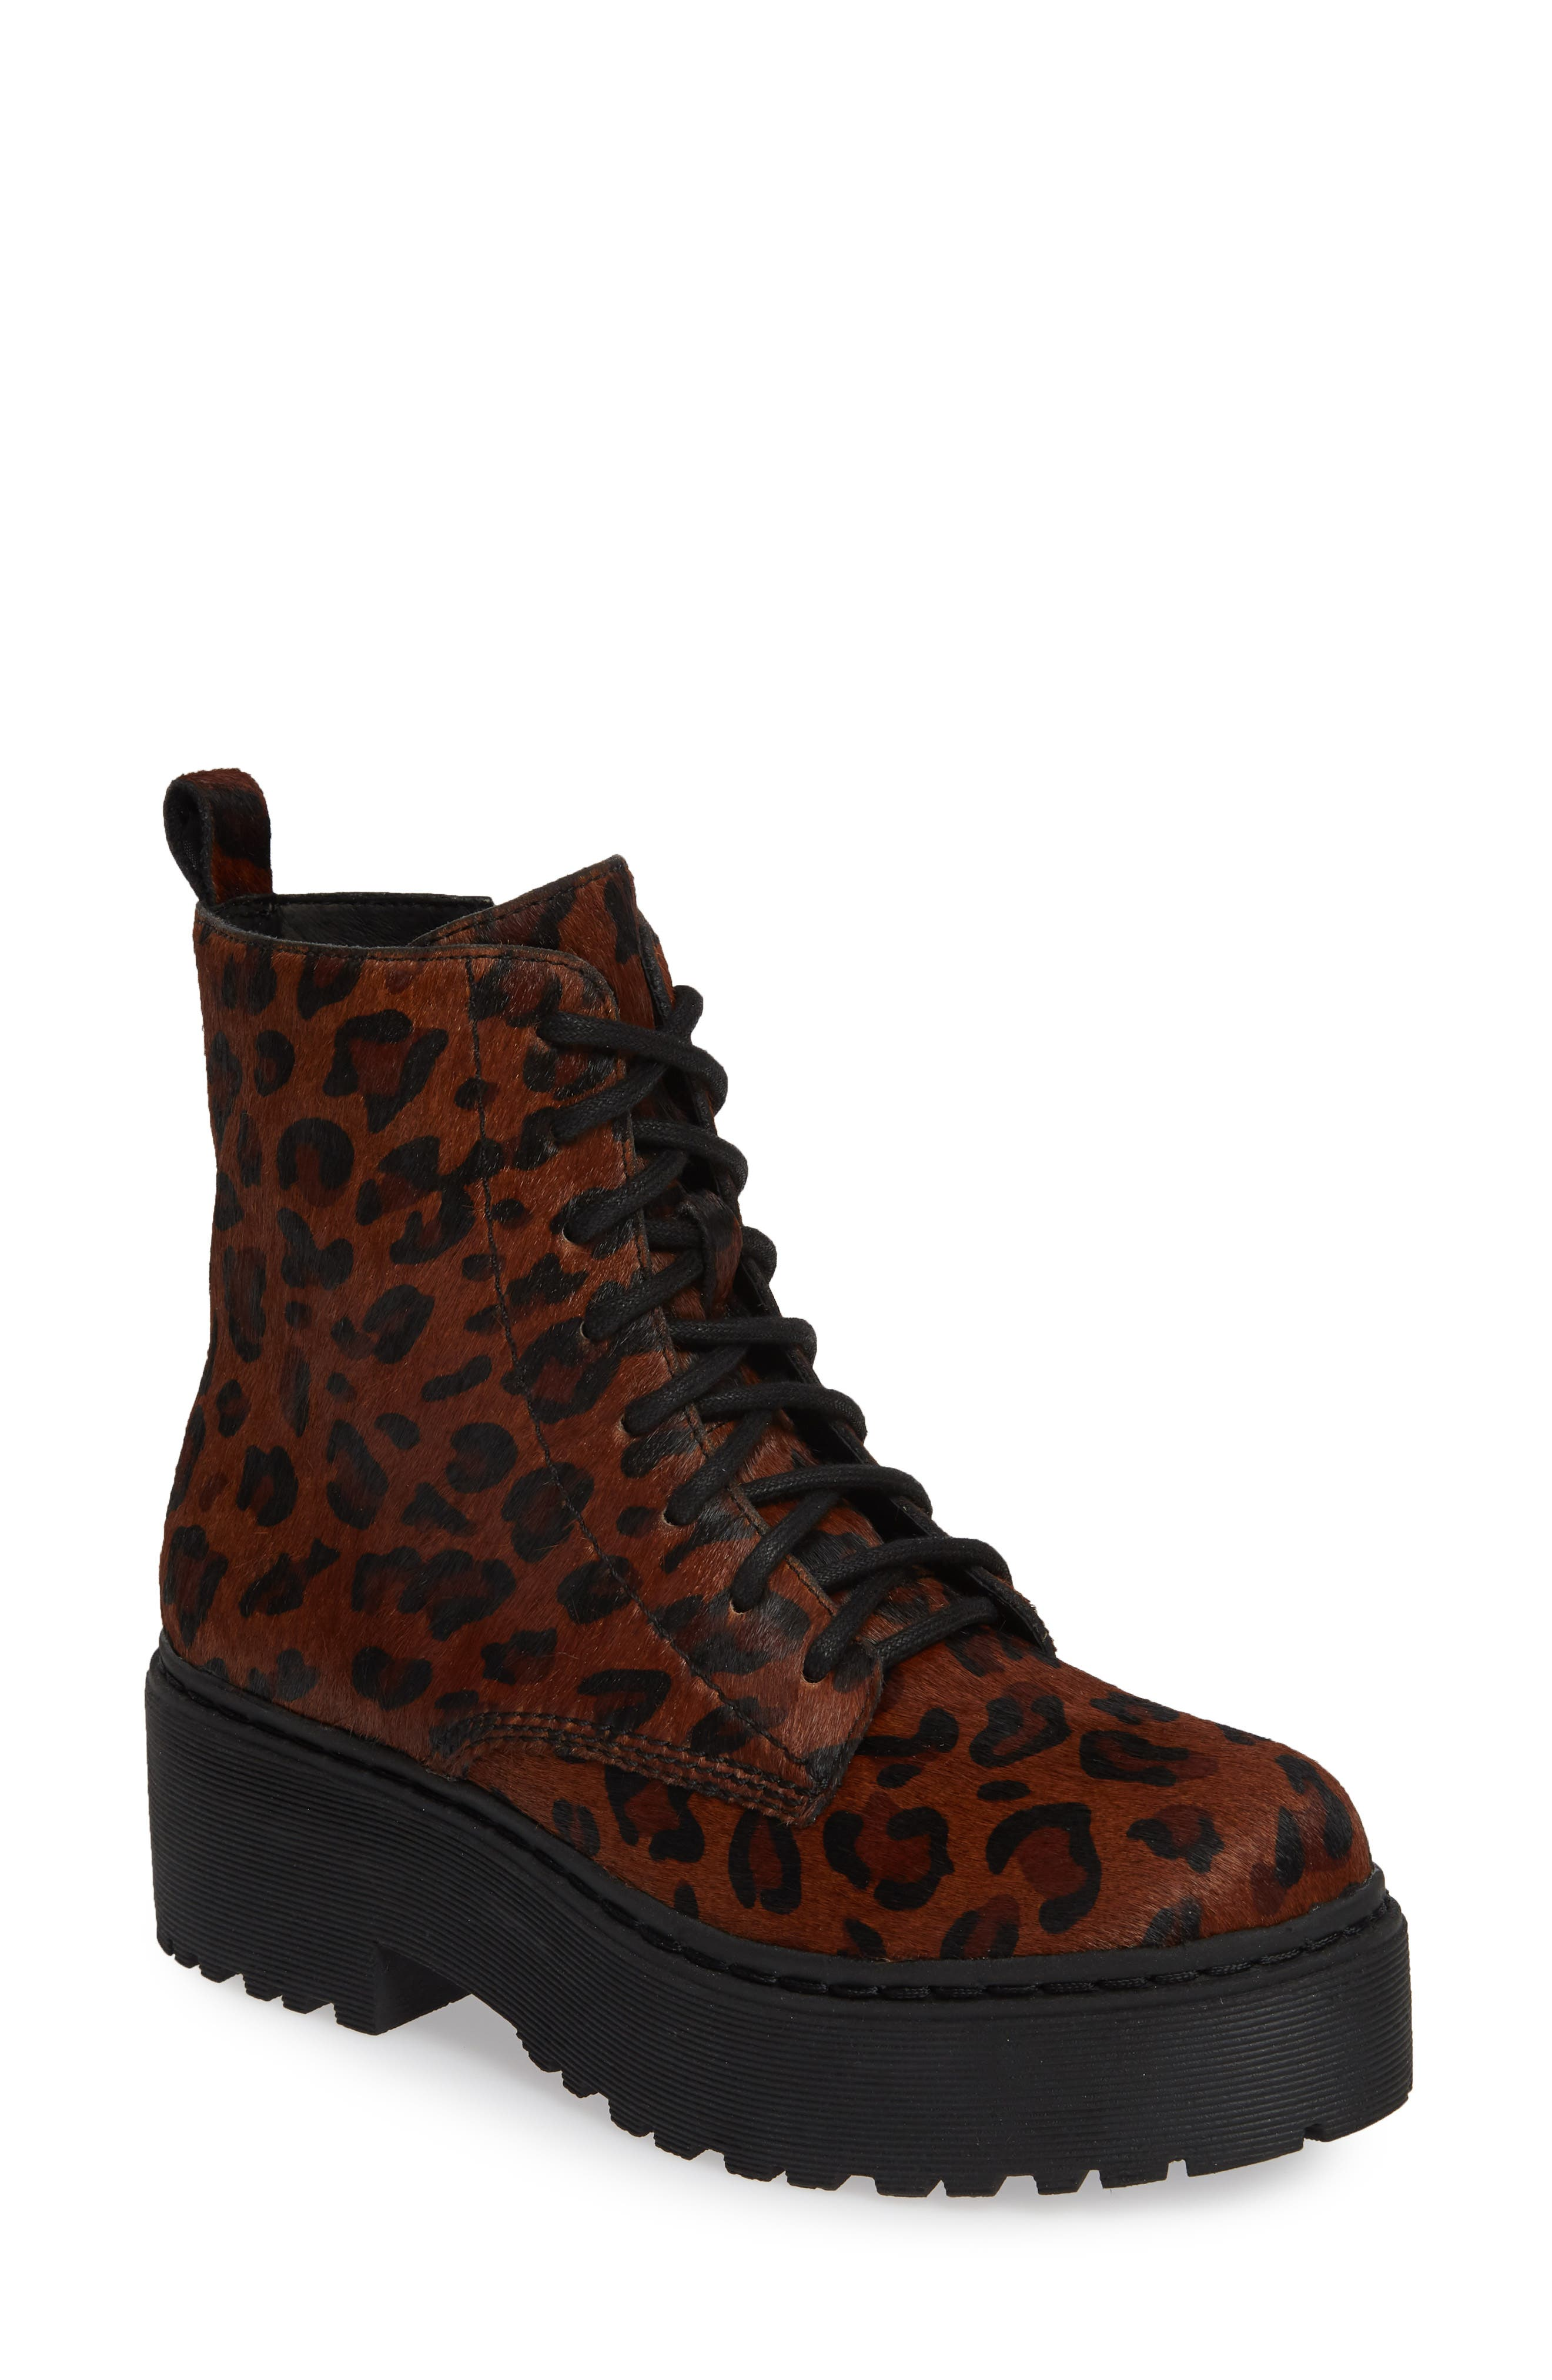 Jeffrey Campbell District-F Genuine Calf Hair Platform Boot- Brown